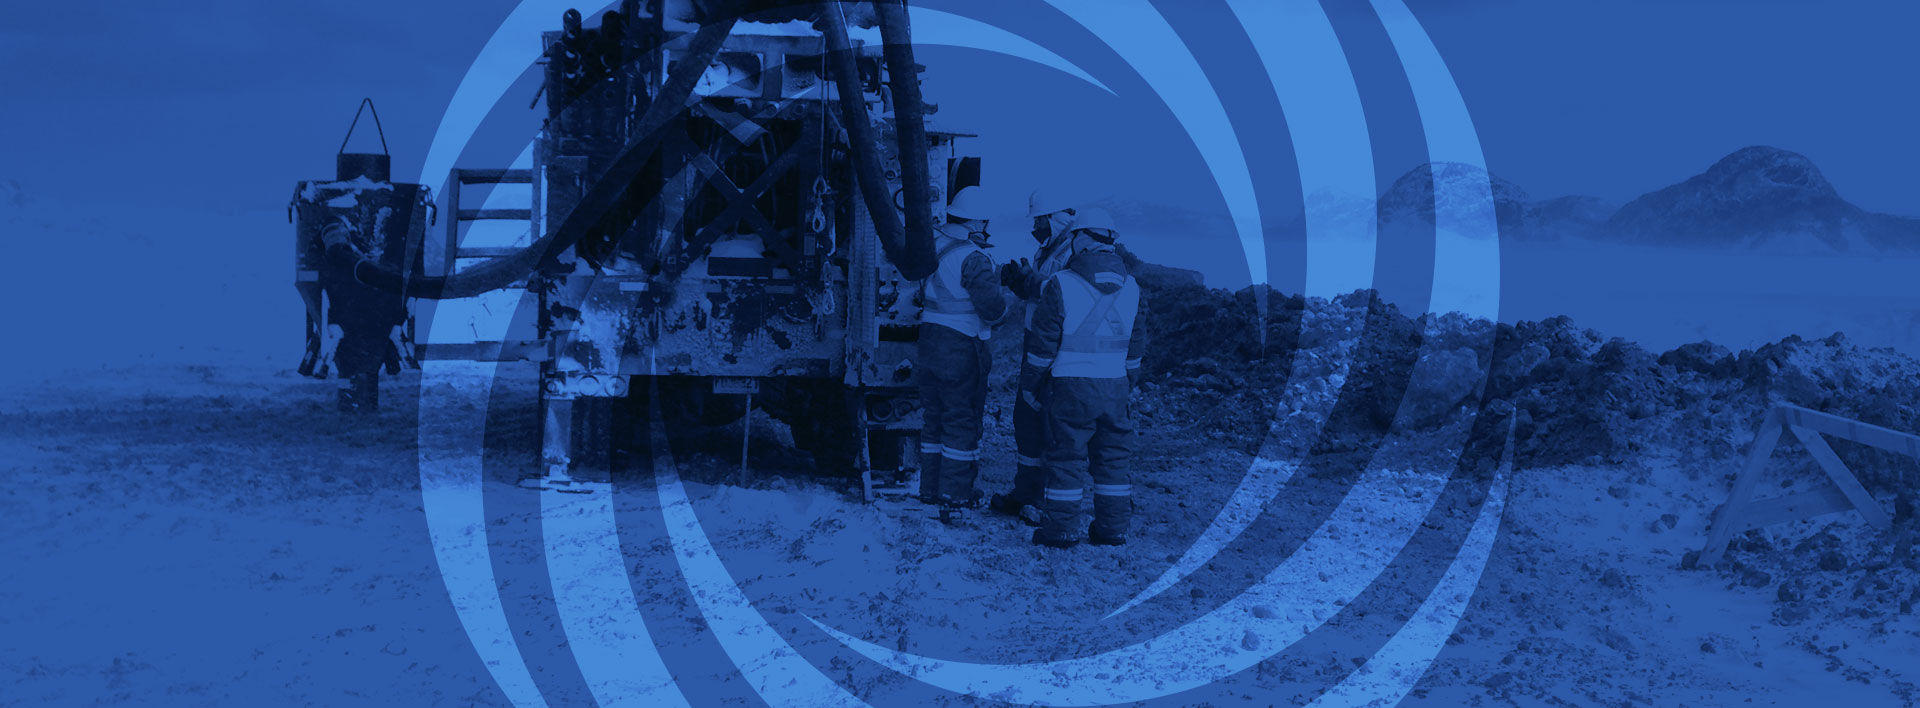 forage fte drilling equipement